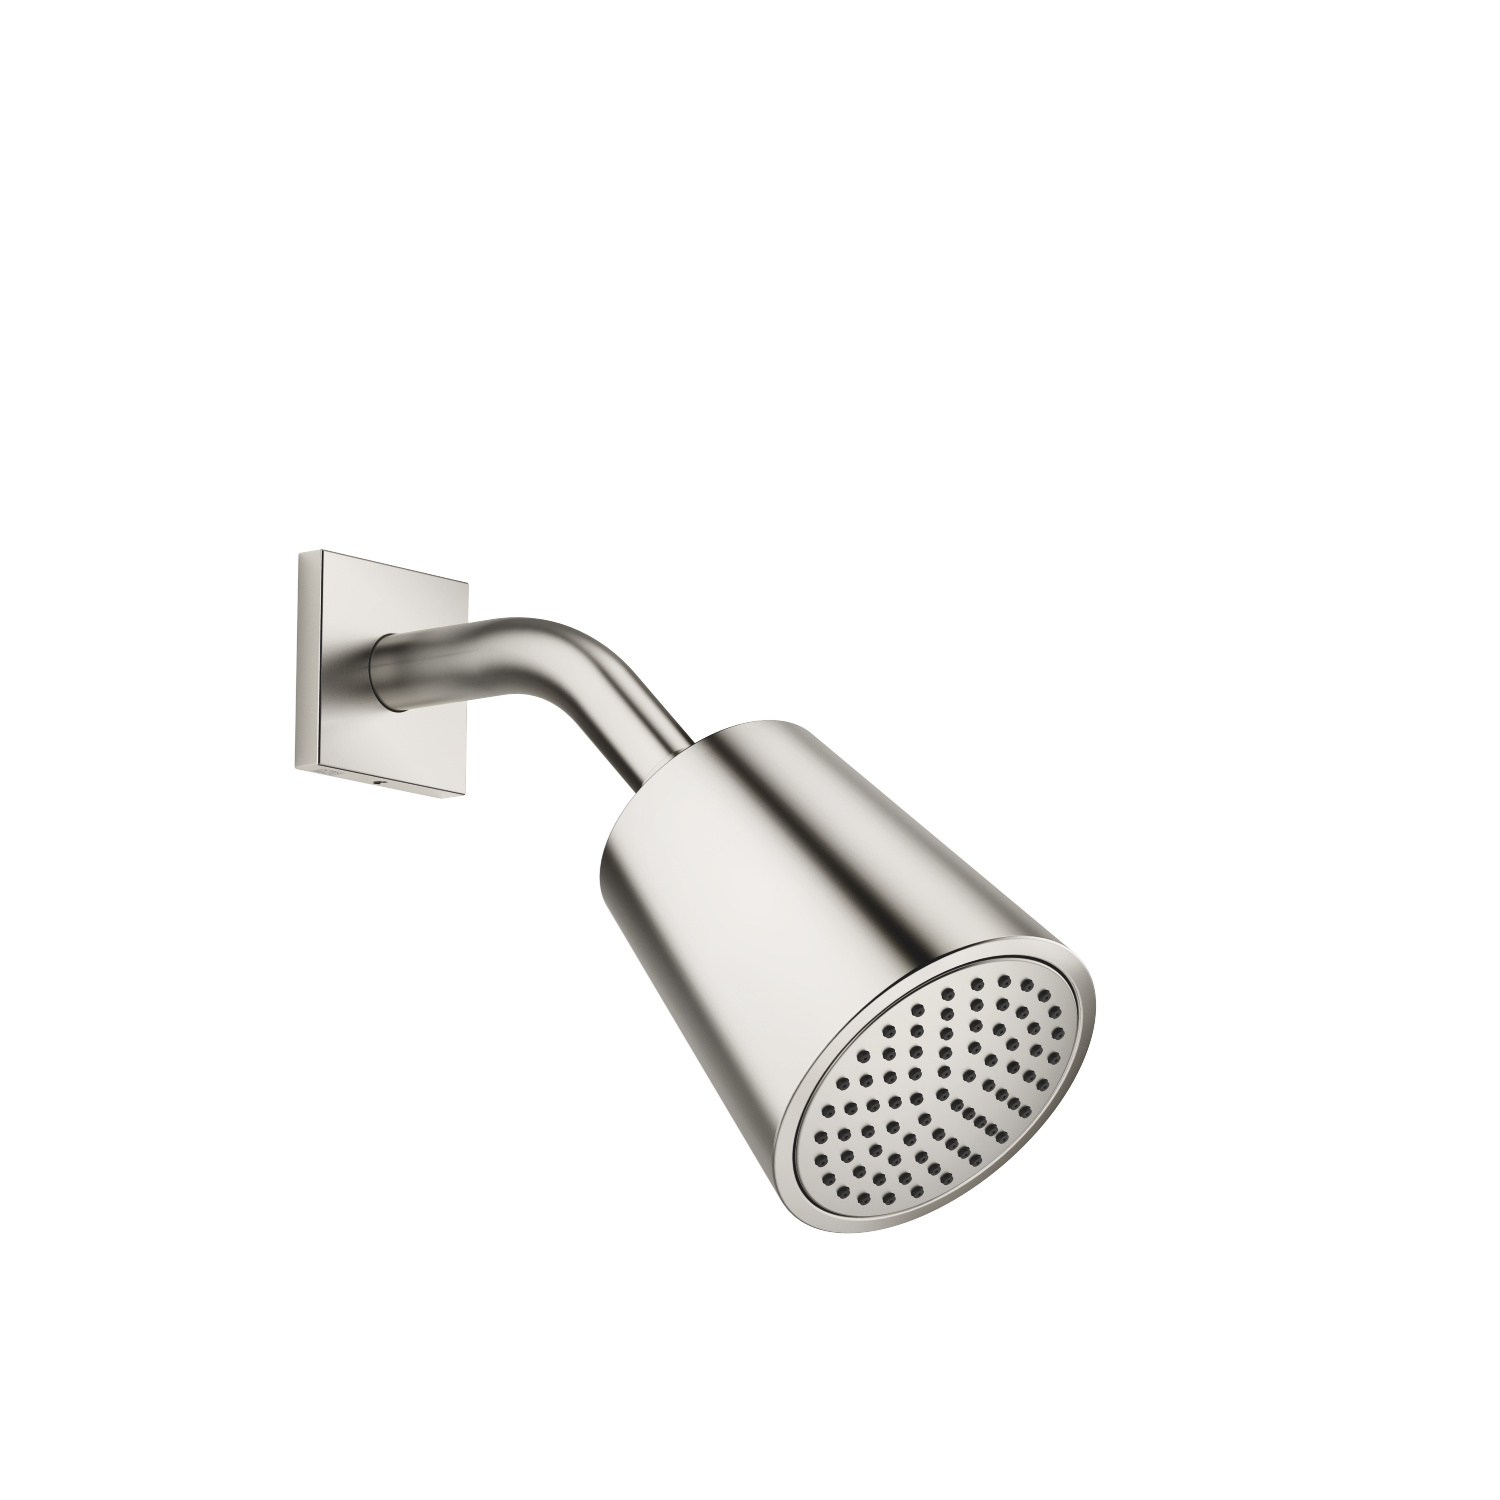 Shower head - platinum matt